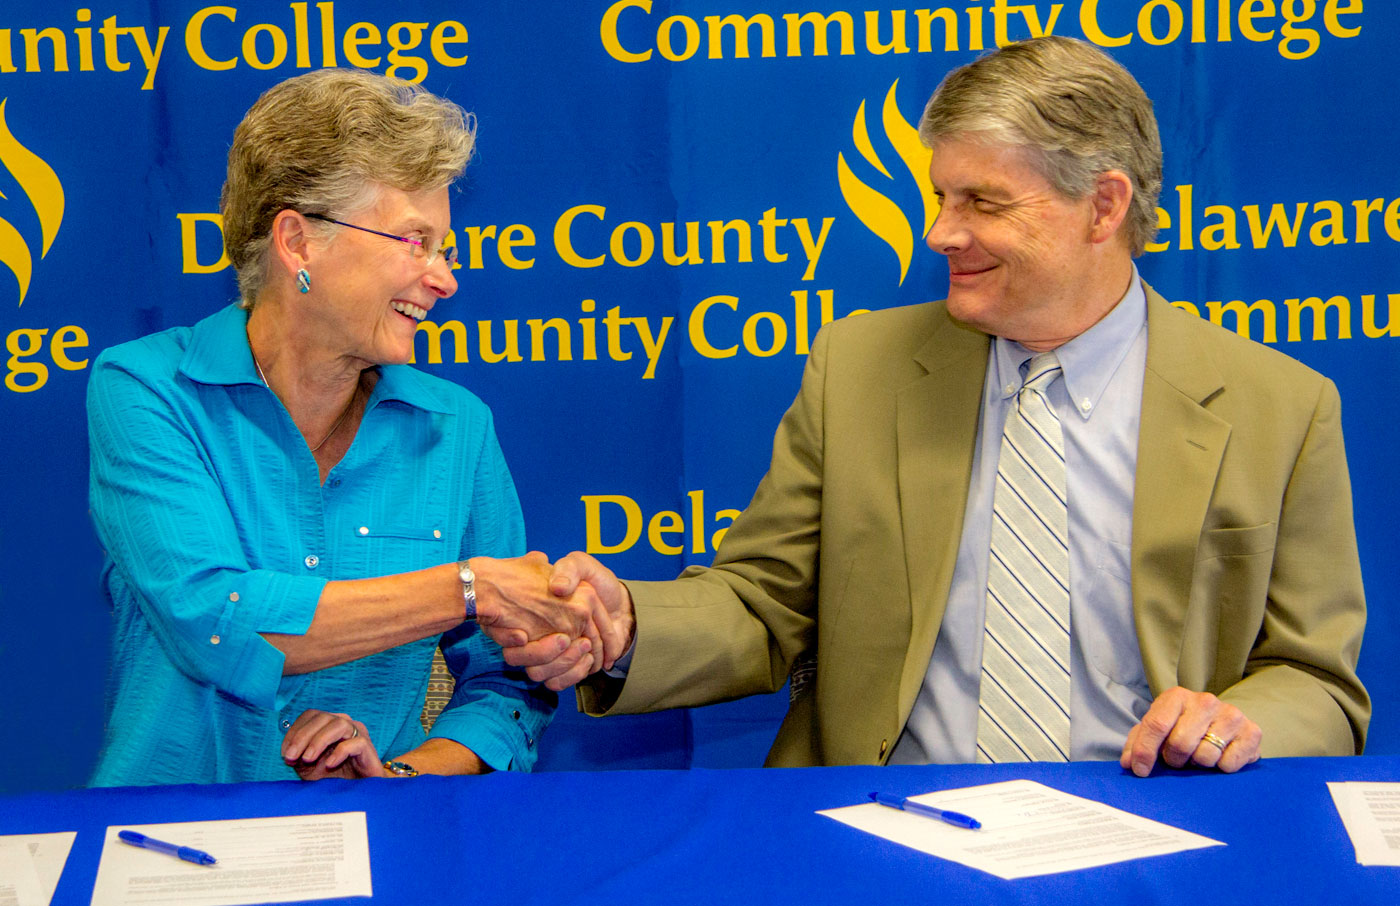 Delaware county community college find yourself here 2 college signs guaranteed admission agreement with penn state university 1betcityfo Choice Image